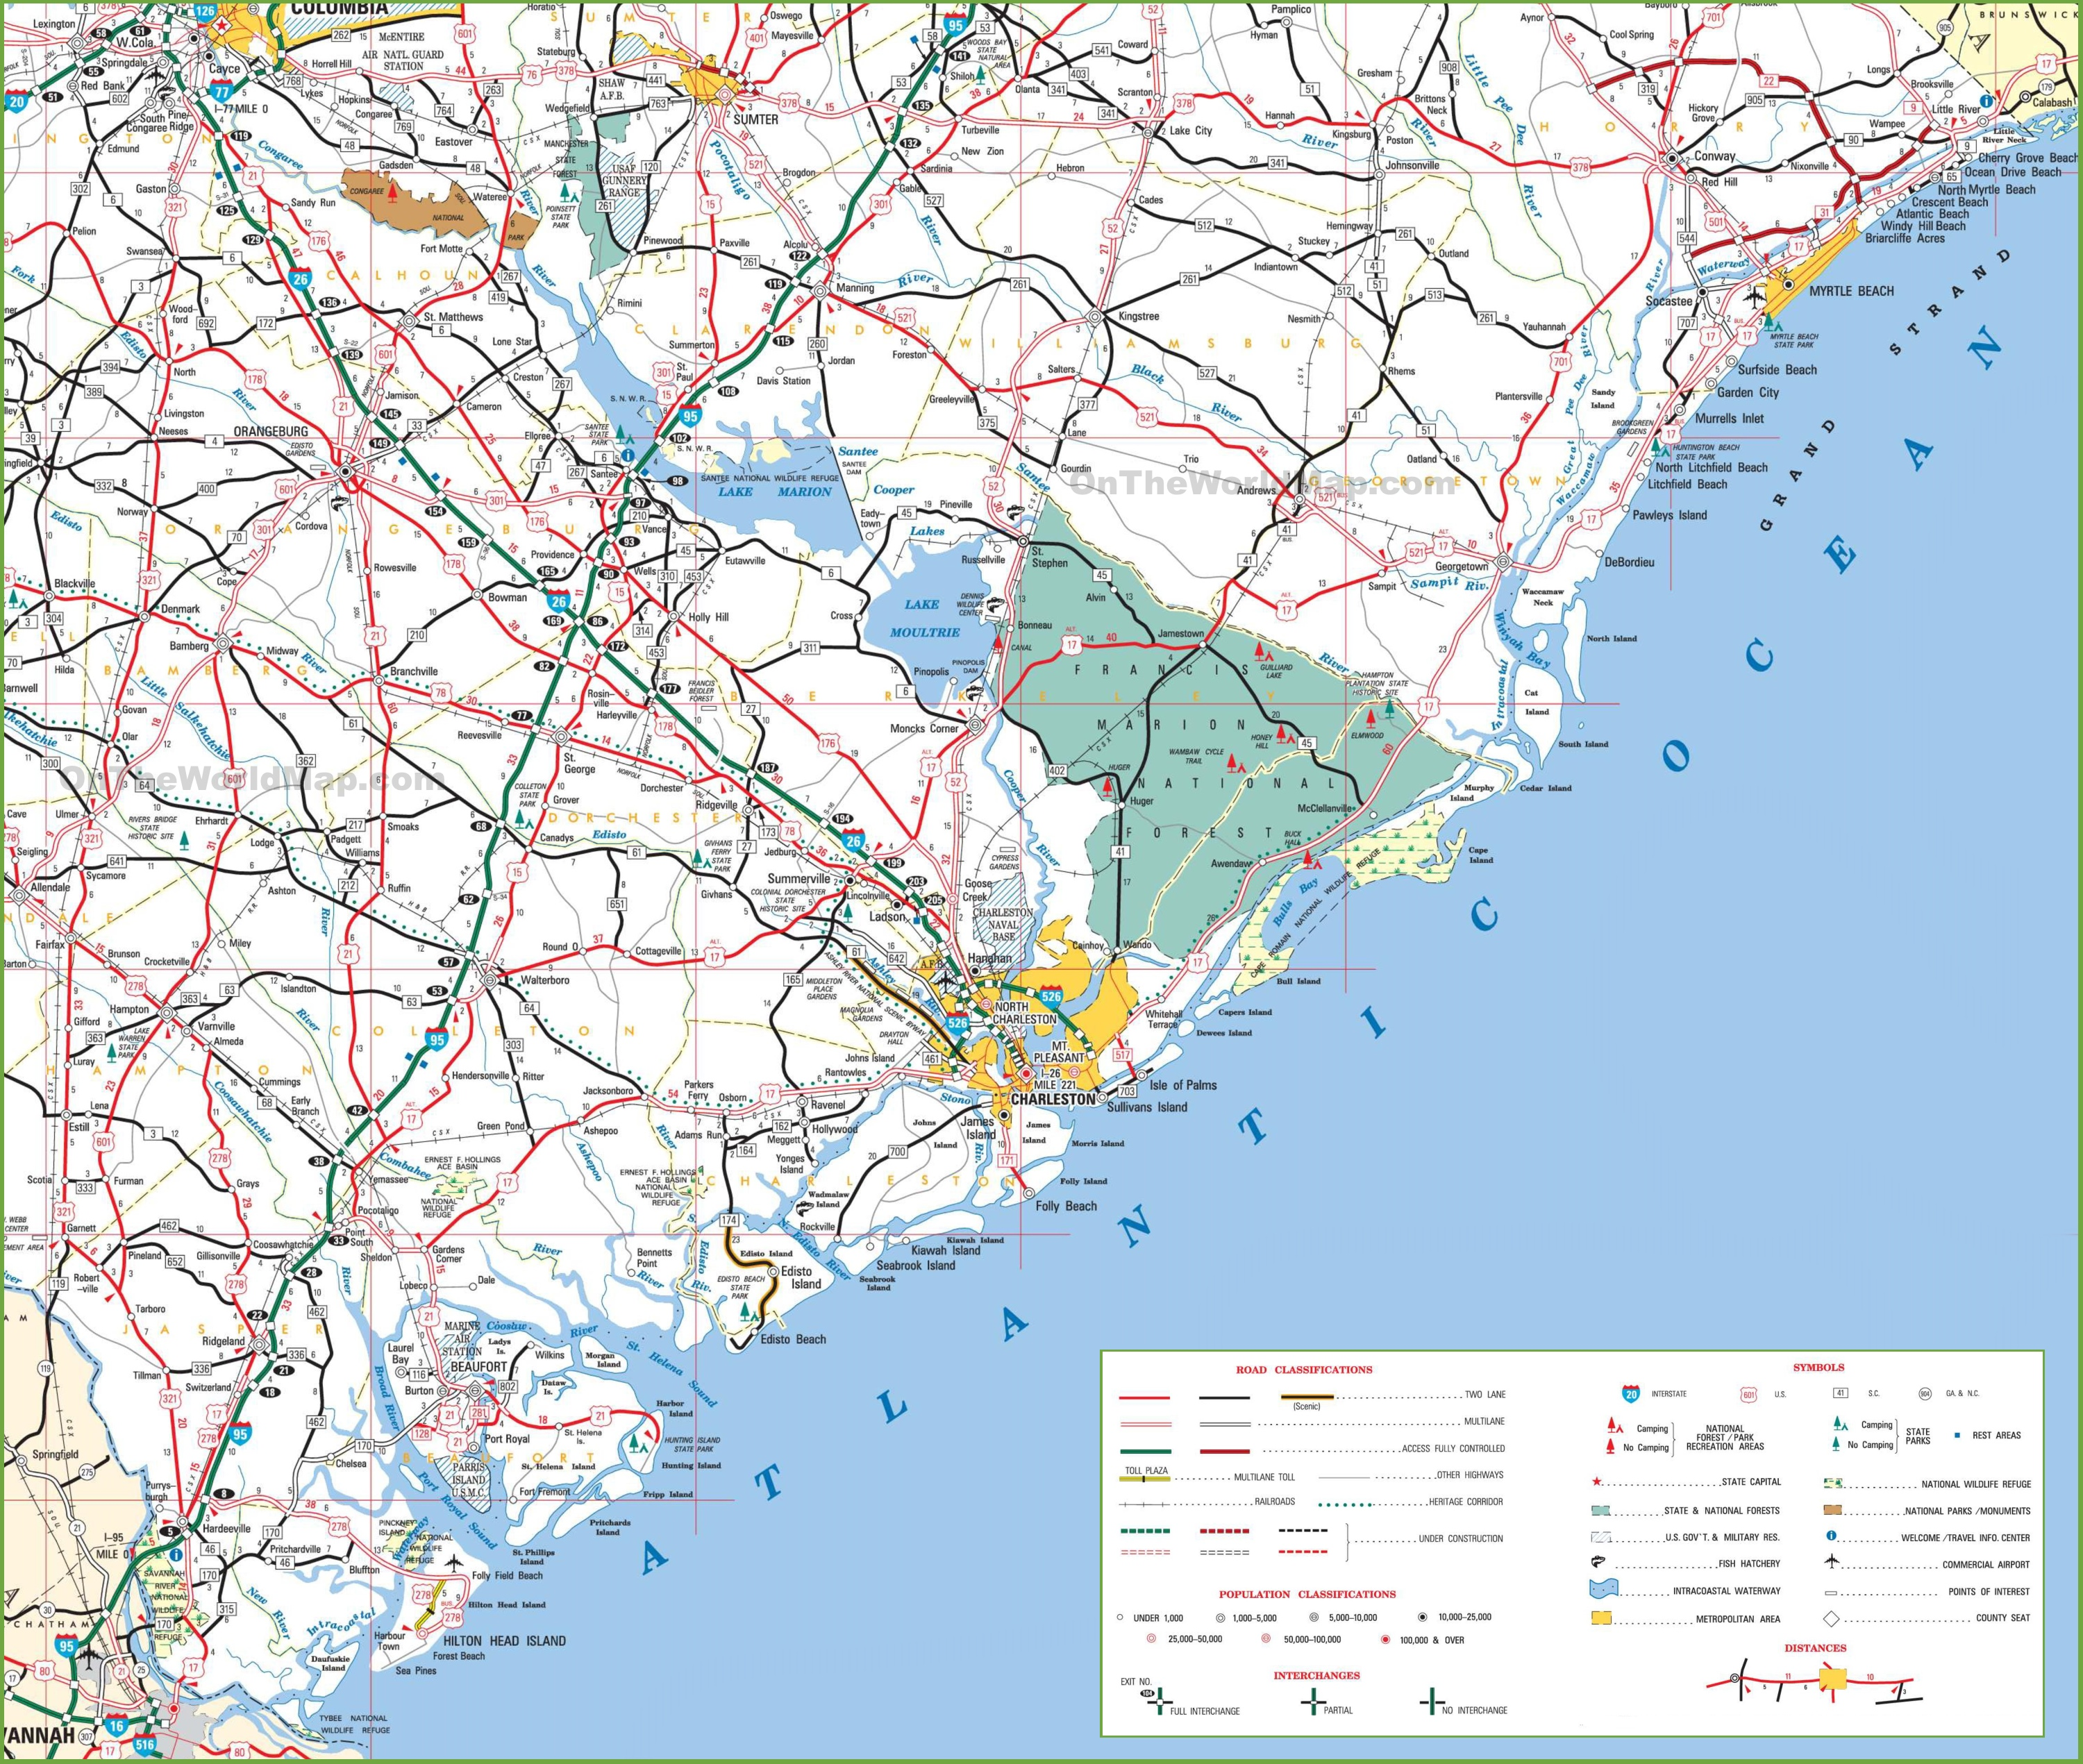 South Carolina State Maps USA Maps Of South Carolina SC - Map usa south